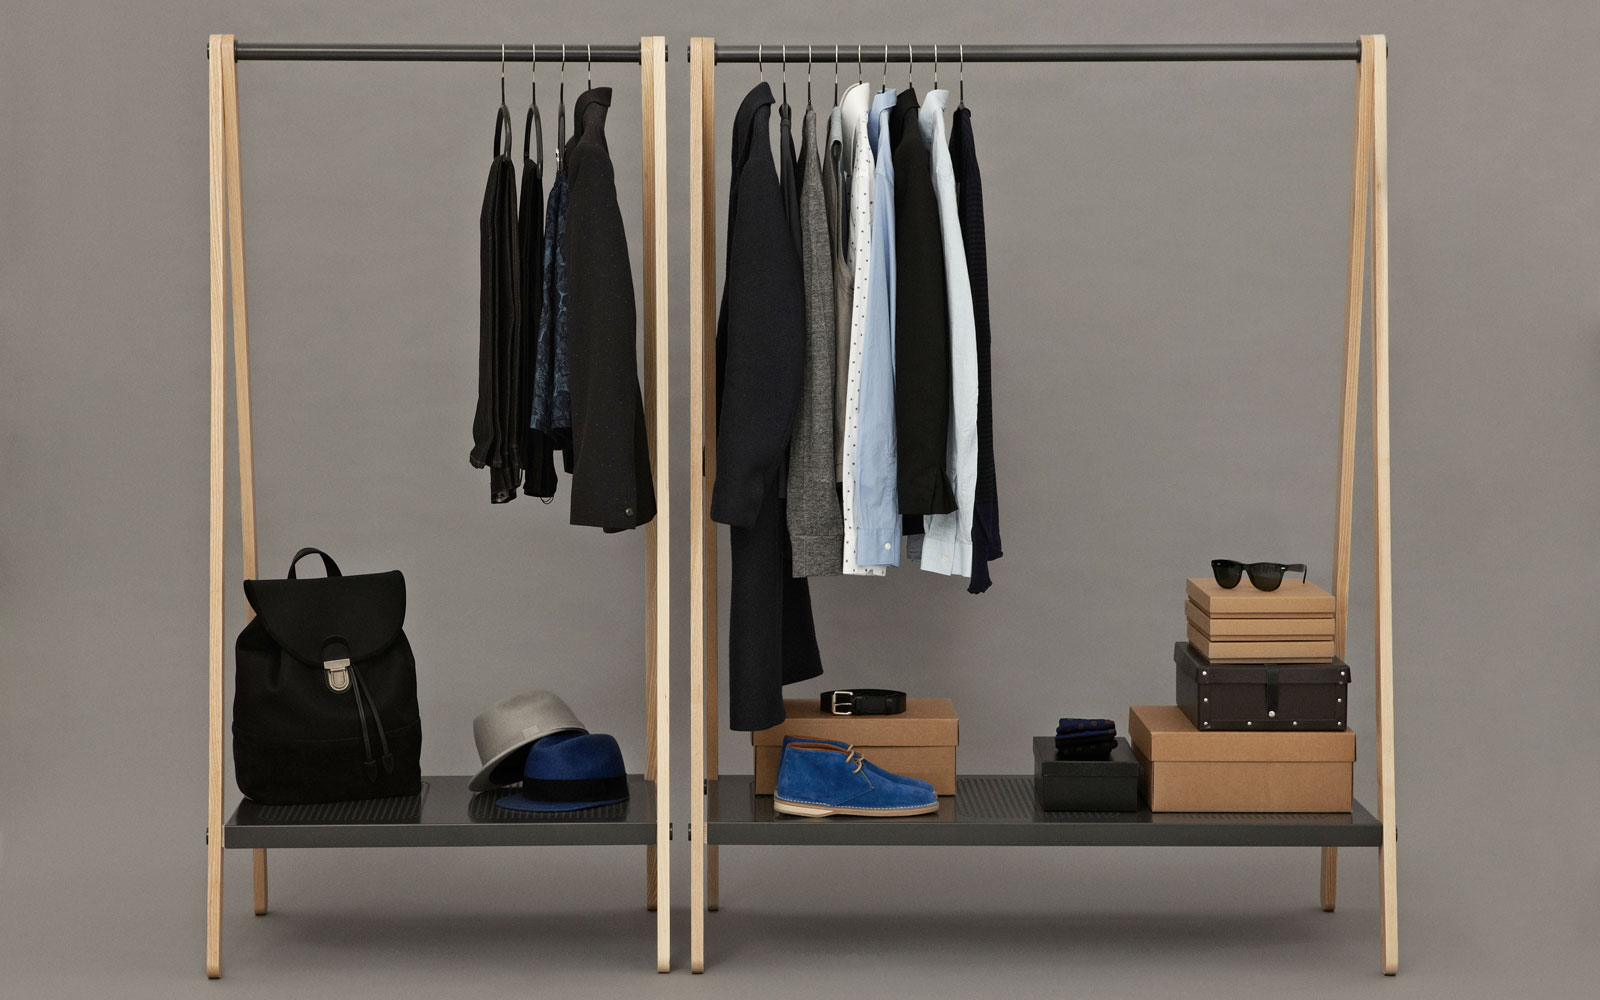 Marvelous photograph of Toj Clothes Rack Stylish wardrobe furniture in grey steel and ash  with #1E3D66 color and 1600x1000 pixels